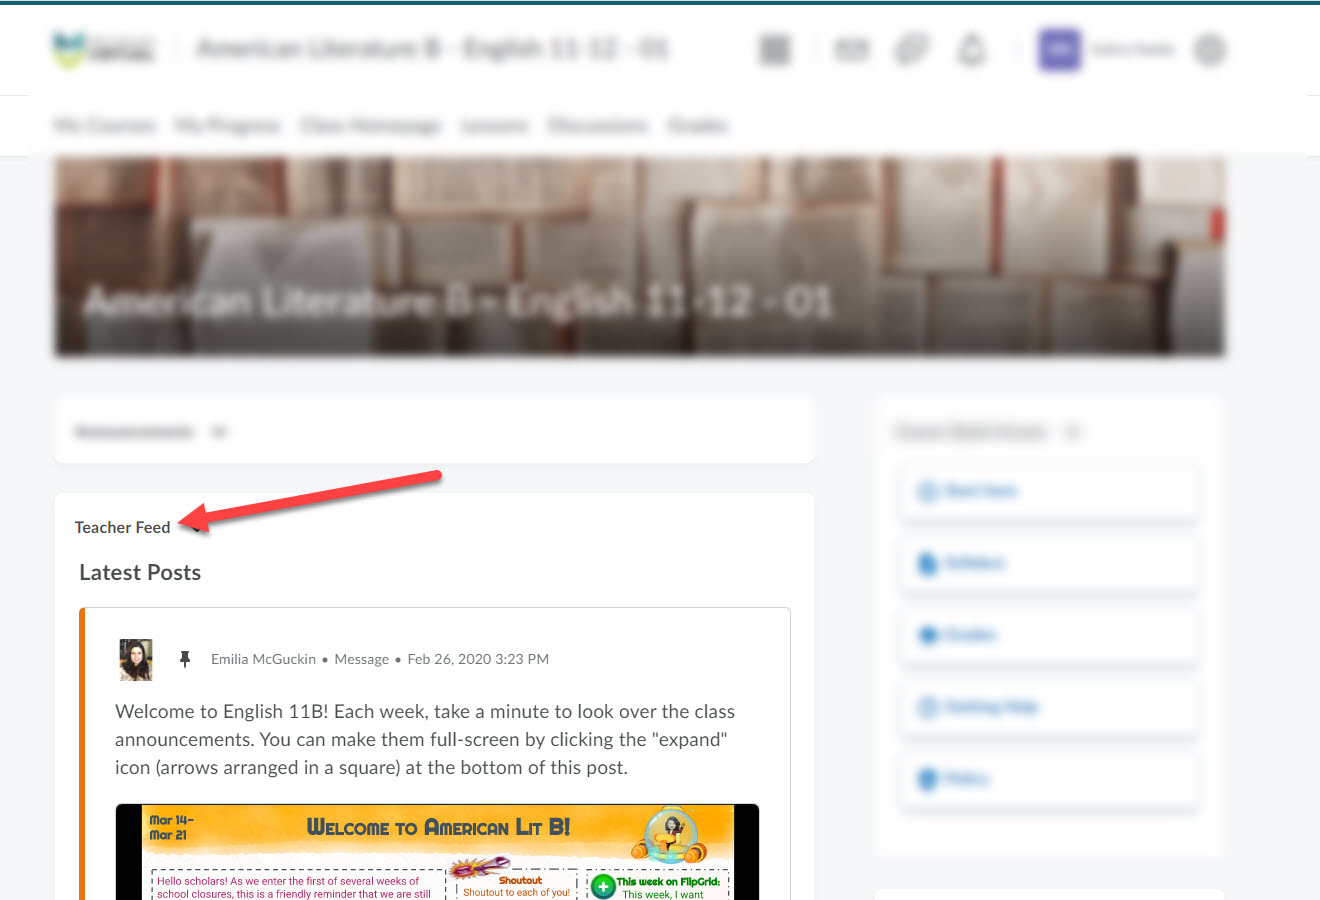 Course homepage shows an arrow pointing to the Teacher Feed section.